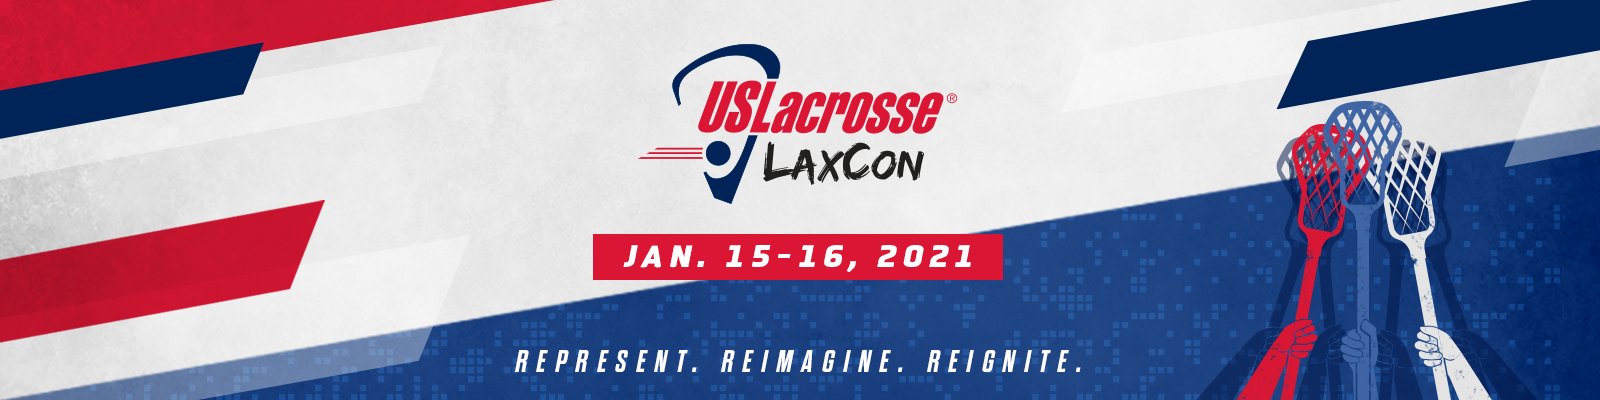 SquadLocker Exhibits Virtually at LaxCon 2021